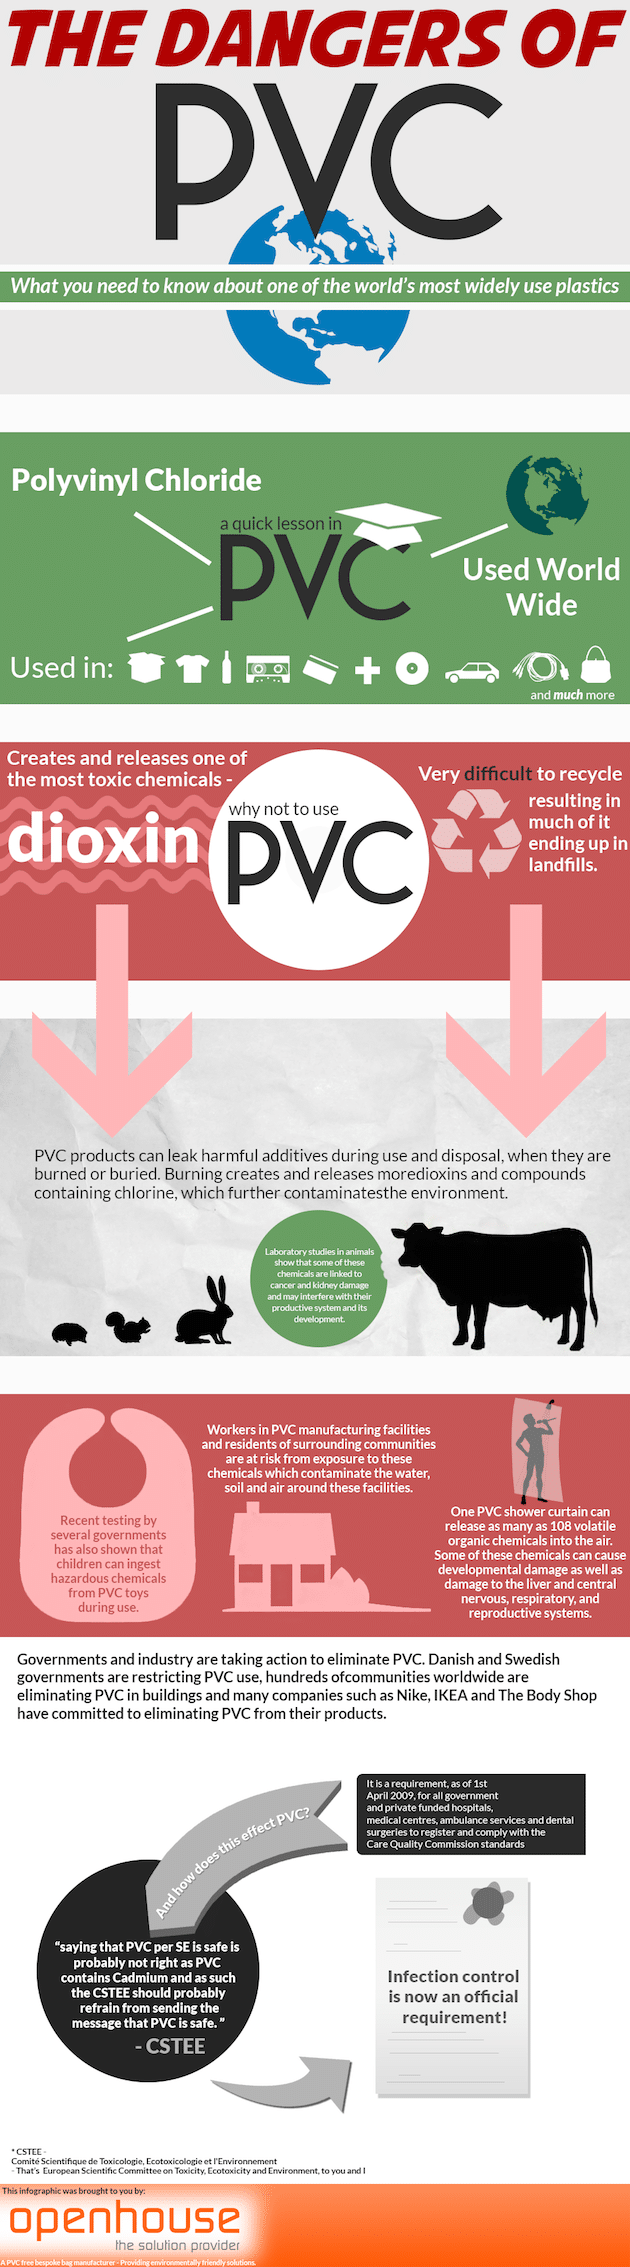 Why You Should Avoid Pvc Products Organictalks Com